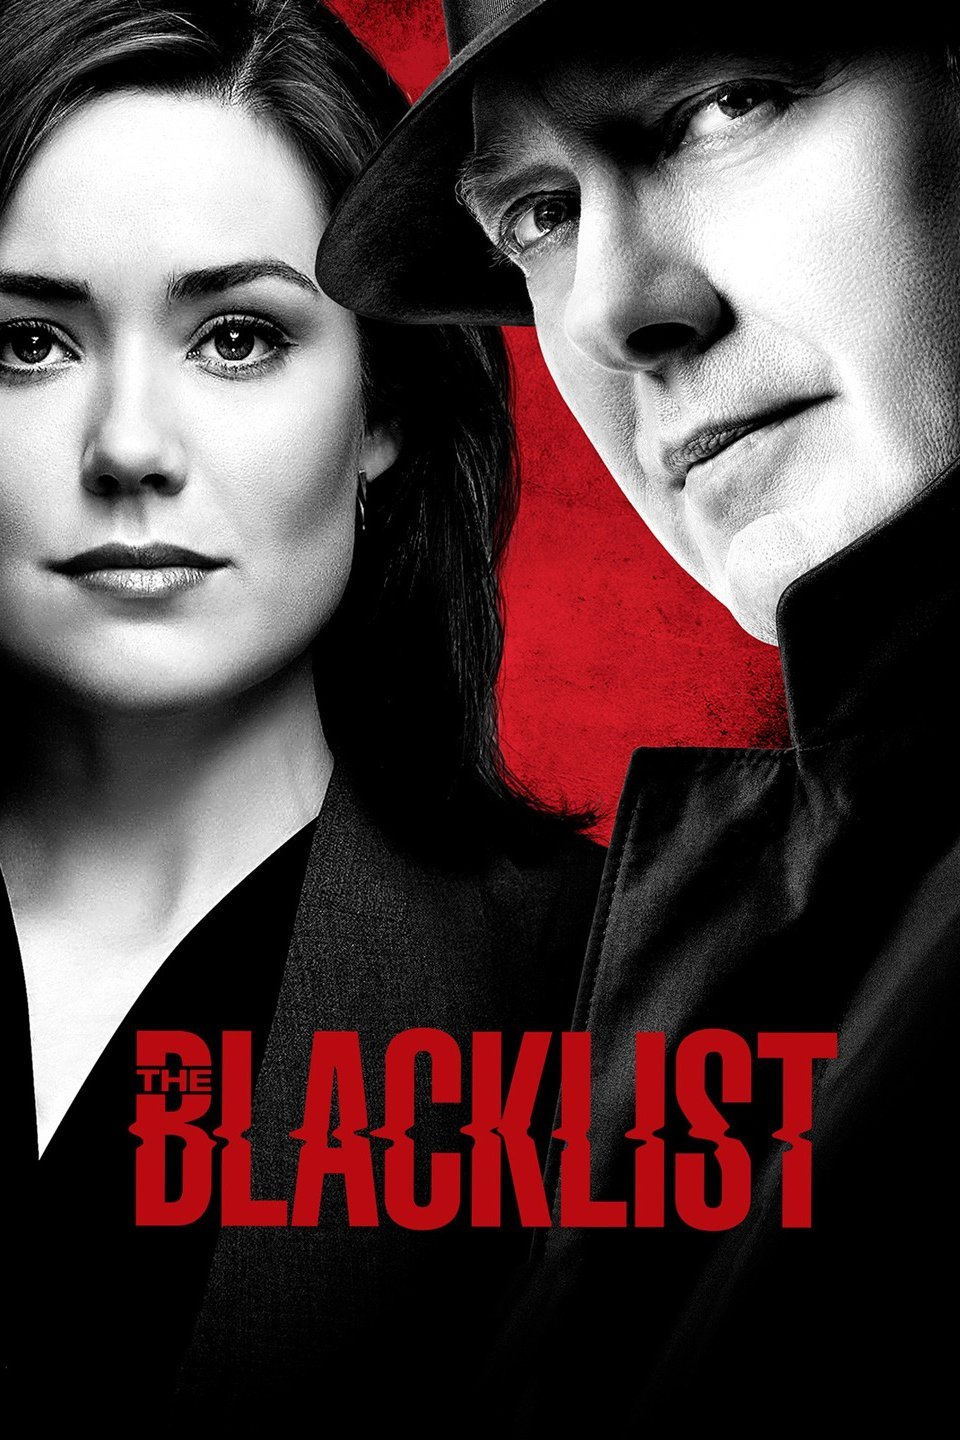 The Blacklist Season 5 Episode 16 Download HDTV